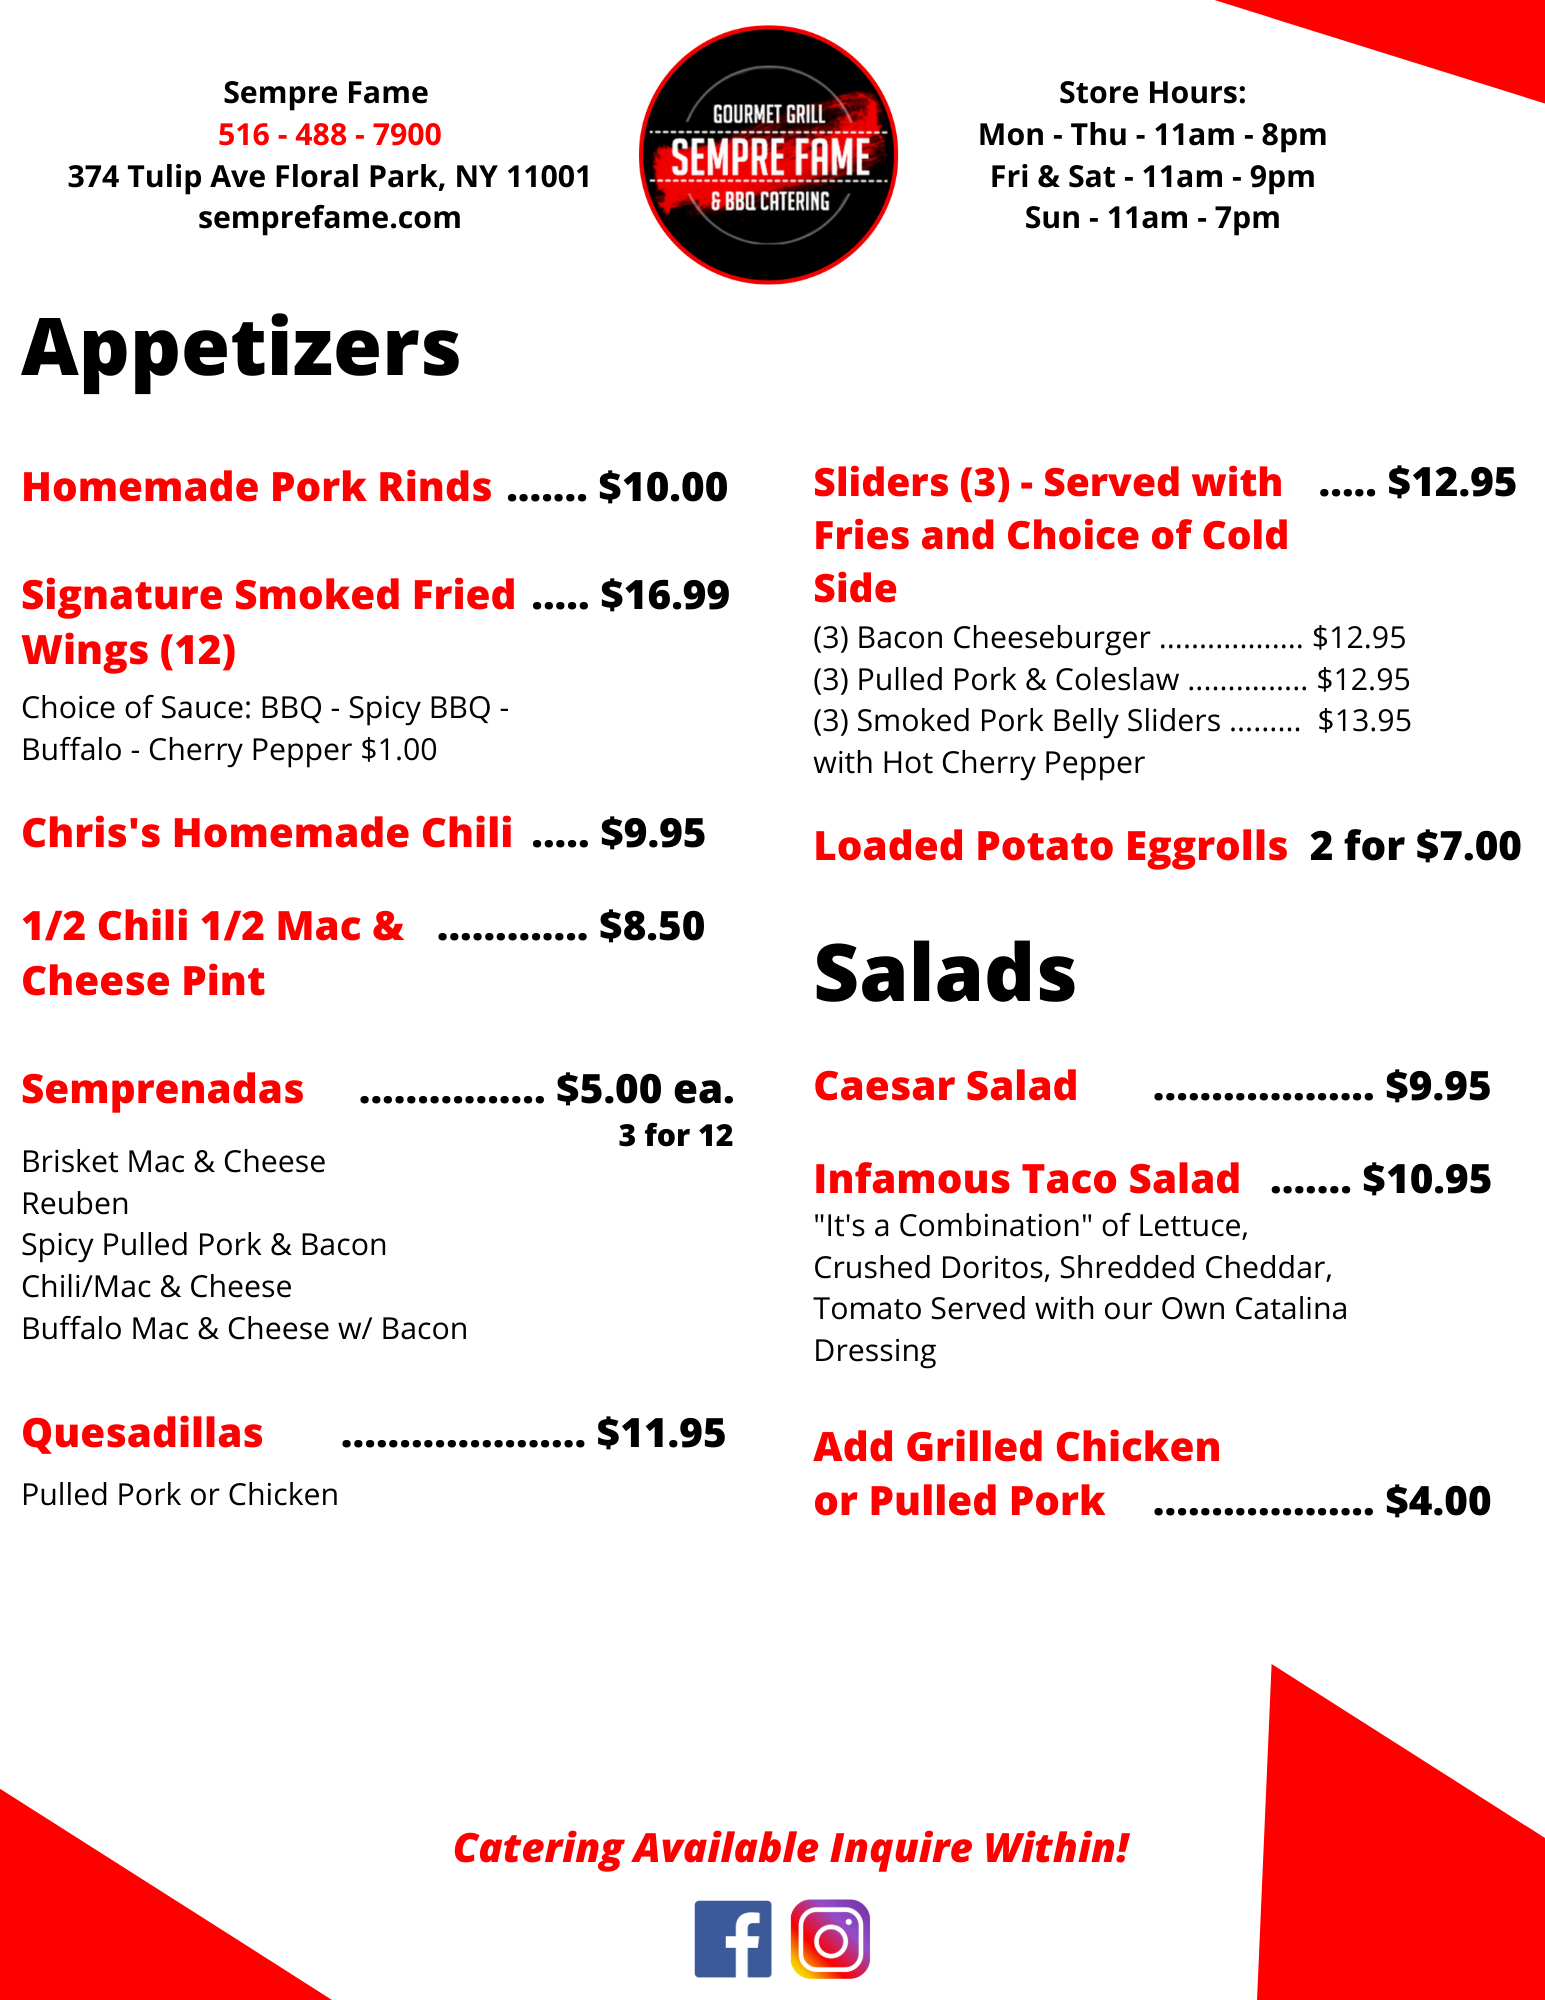 Appetizers & Salads Menu